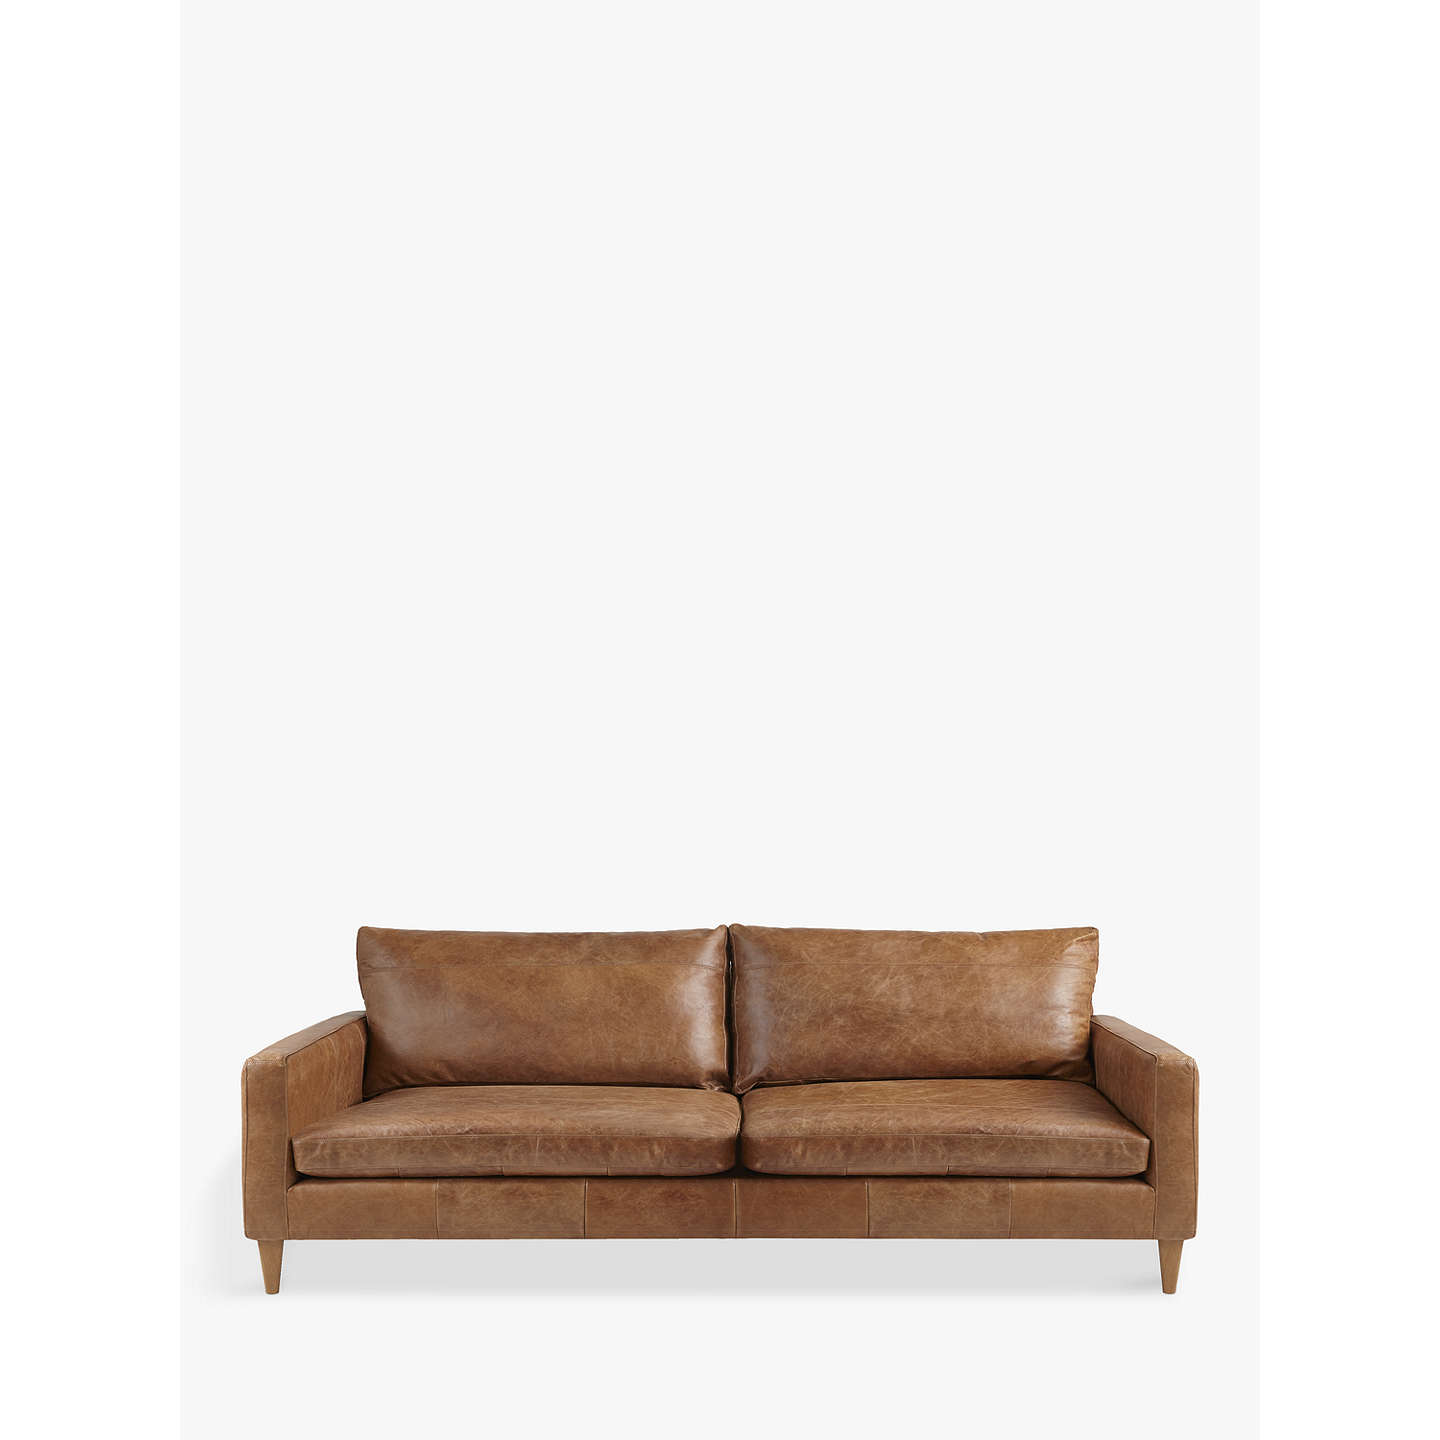 John lewis bailey grand 4 seater semi aniline leather sofa for Leather sofa 7 seater